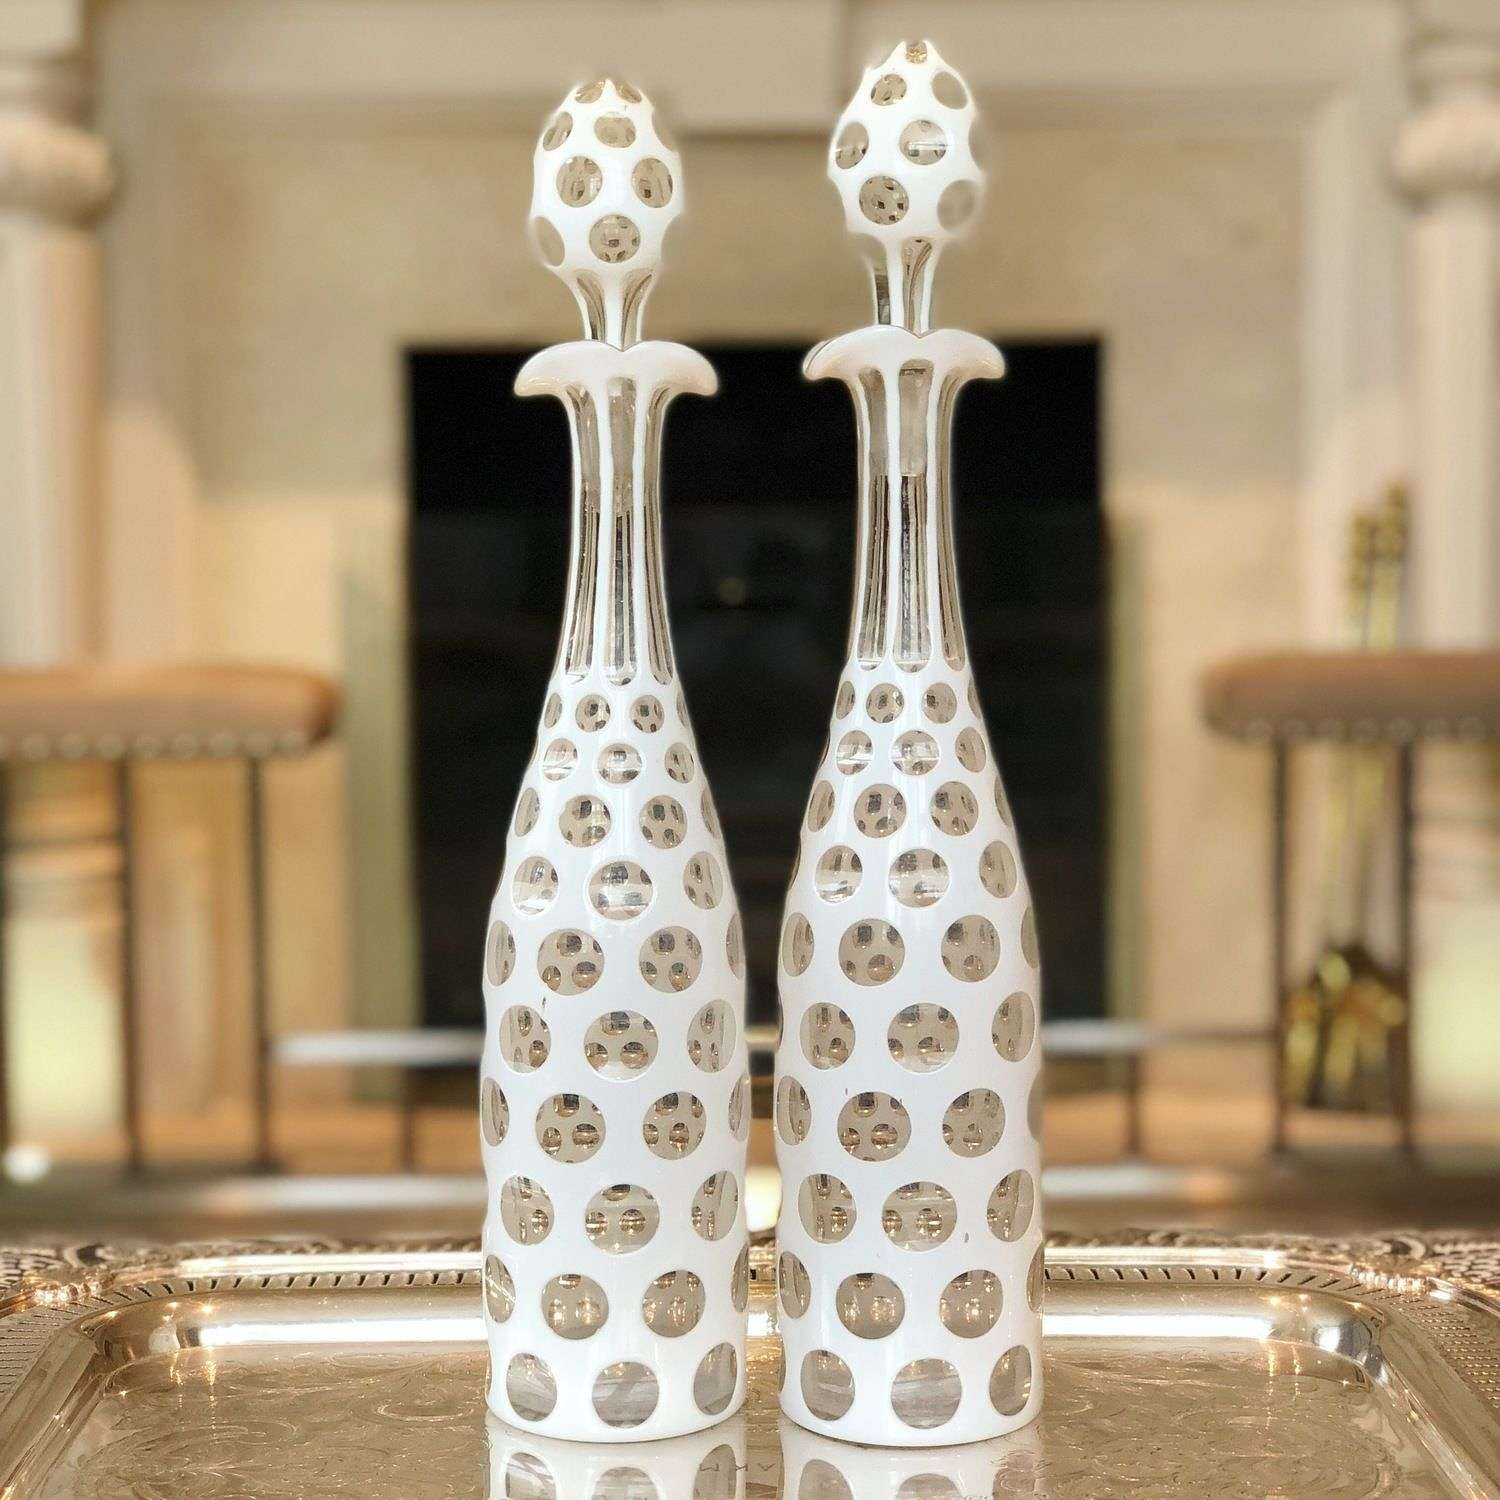 Exquisite pair of white overlay glass decanters Circa 1870s